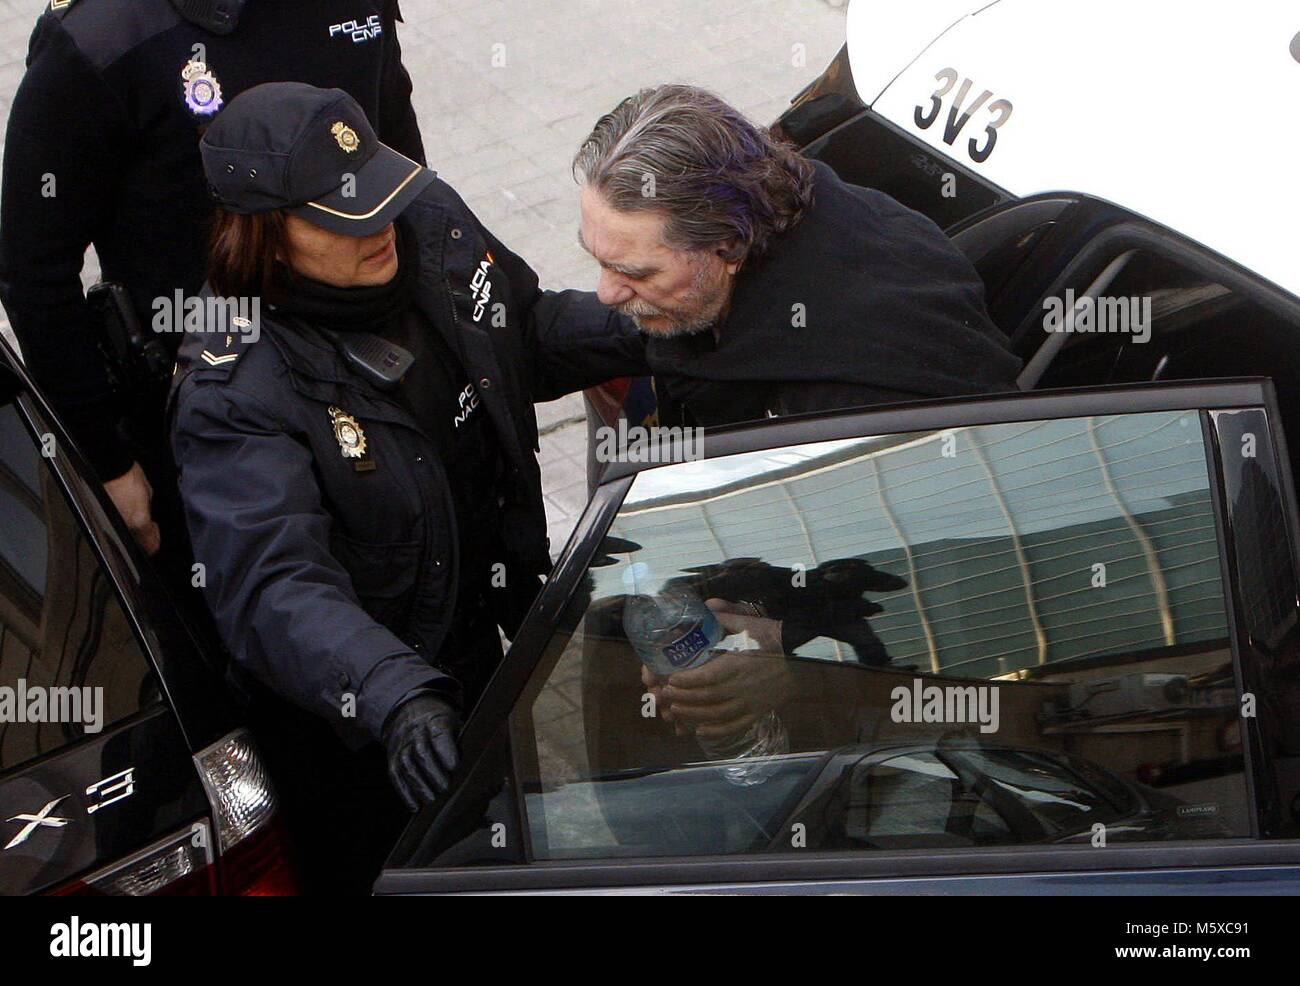 Handcuffed alleged drug trafficker Jose Ramon Prado Bugallo aka Sito Minanco arrives to testify to a court in Pontevedra, - Stock Image